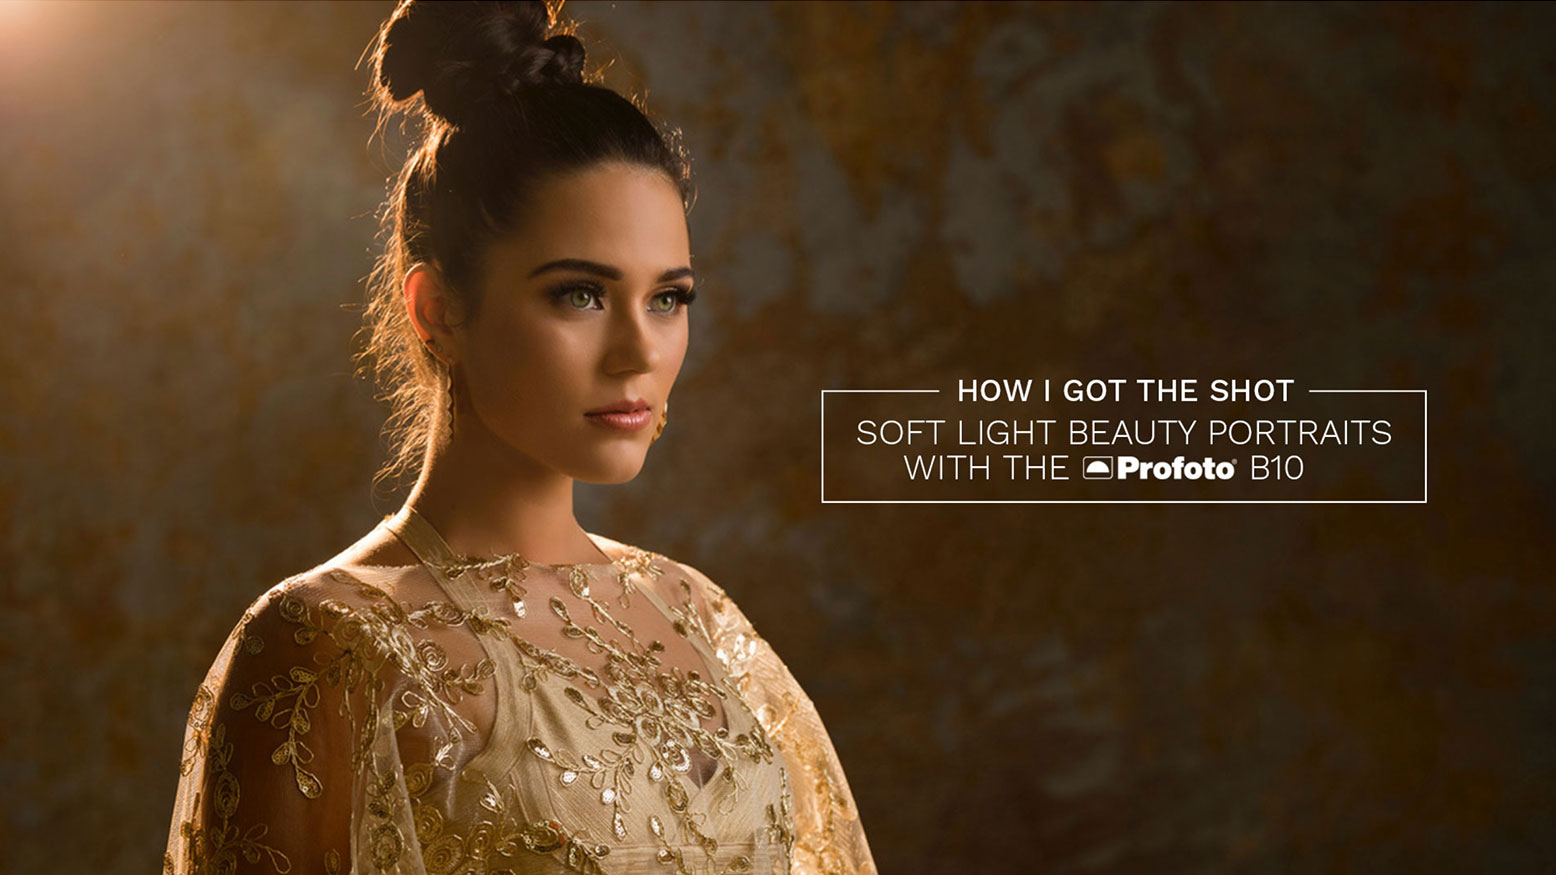 How I Got The Shot: Soft Light Beauty Portraits With The Profoto B10